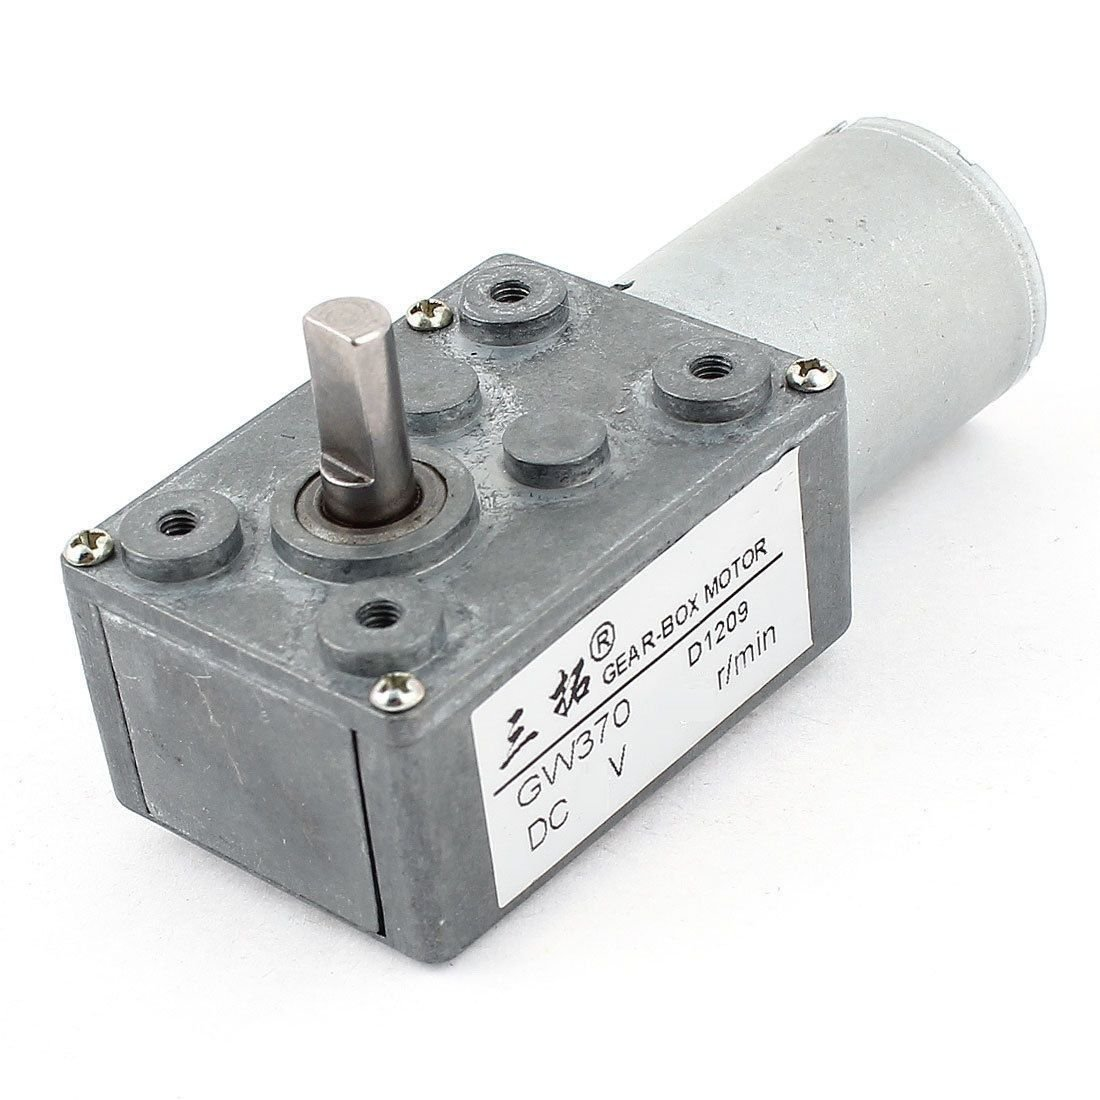 DC 24V 1.2RPM 24KG.cm High Torque Reducing Gearbox Motor DC Worm Gear Motor